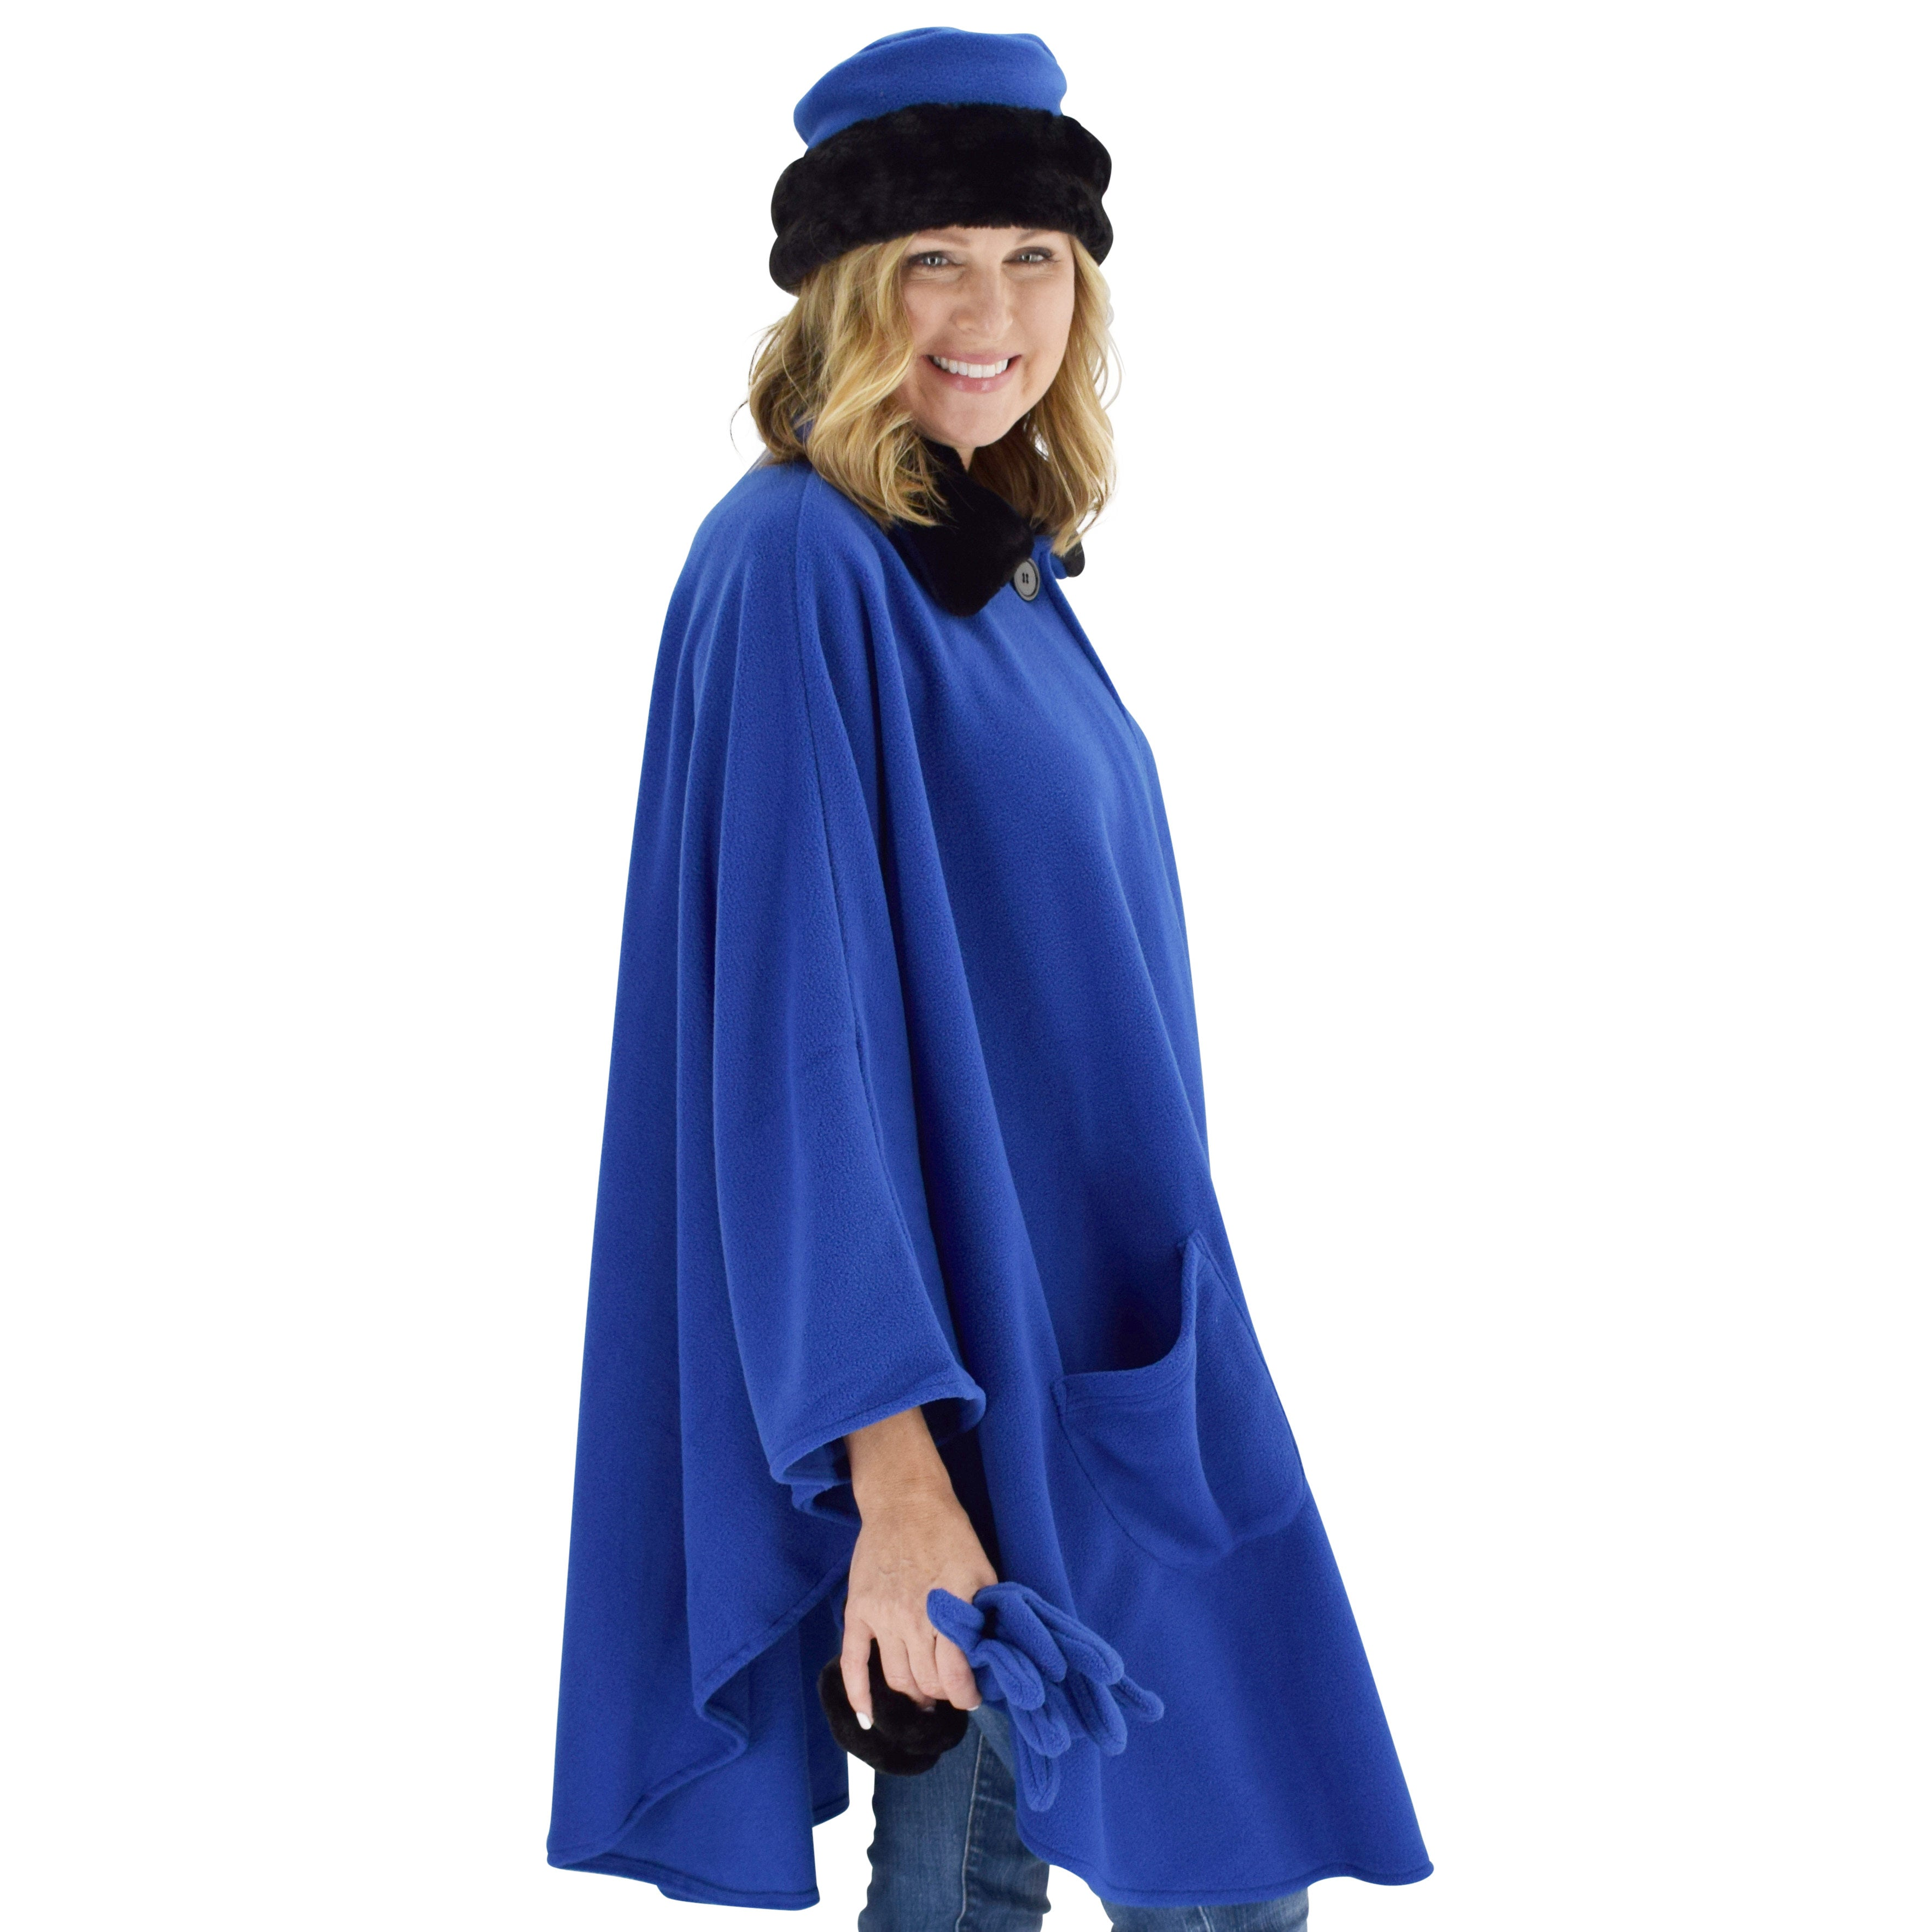 Le Moda Women's Black Fur Collar Polar Fleece Wrap with Matching Gloves and Hat-One Size Fits All at Linda Anderson. color_royal